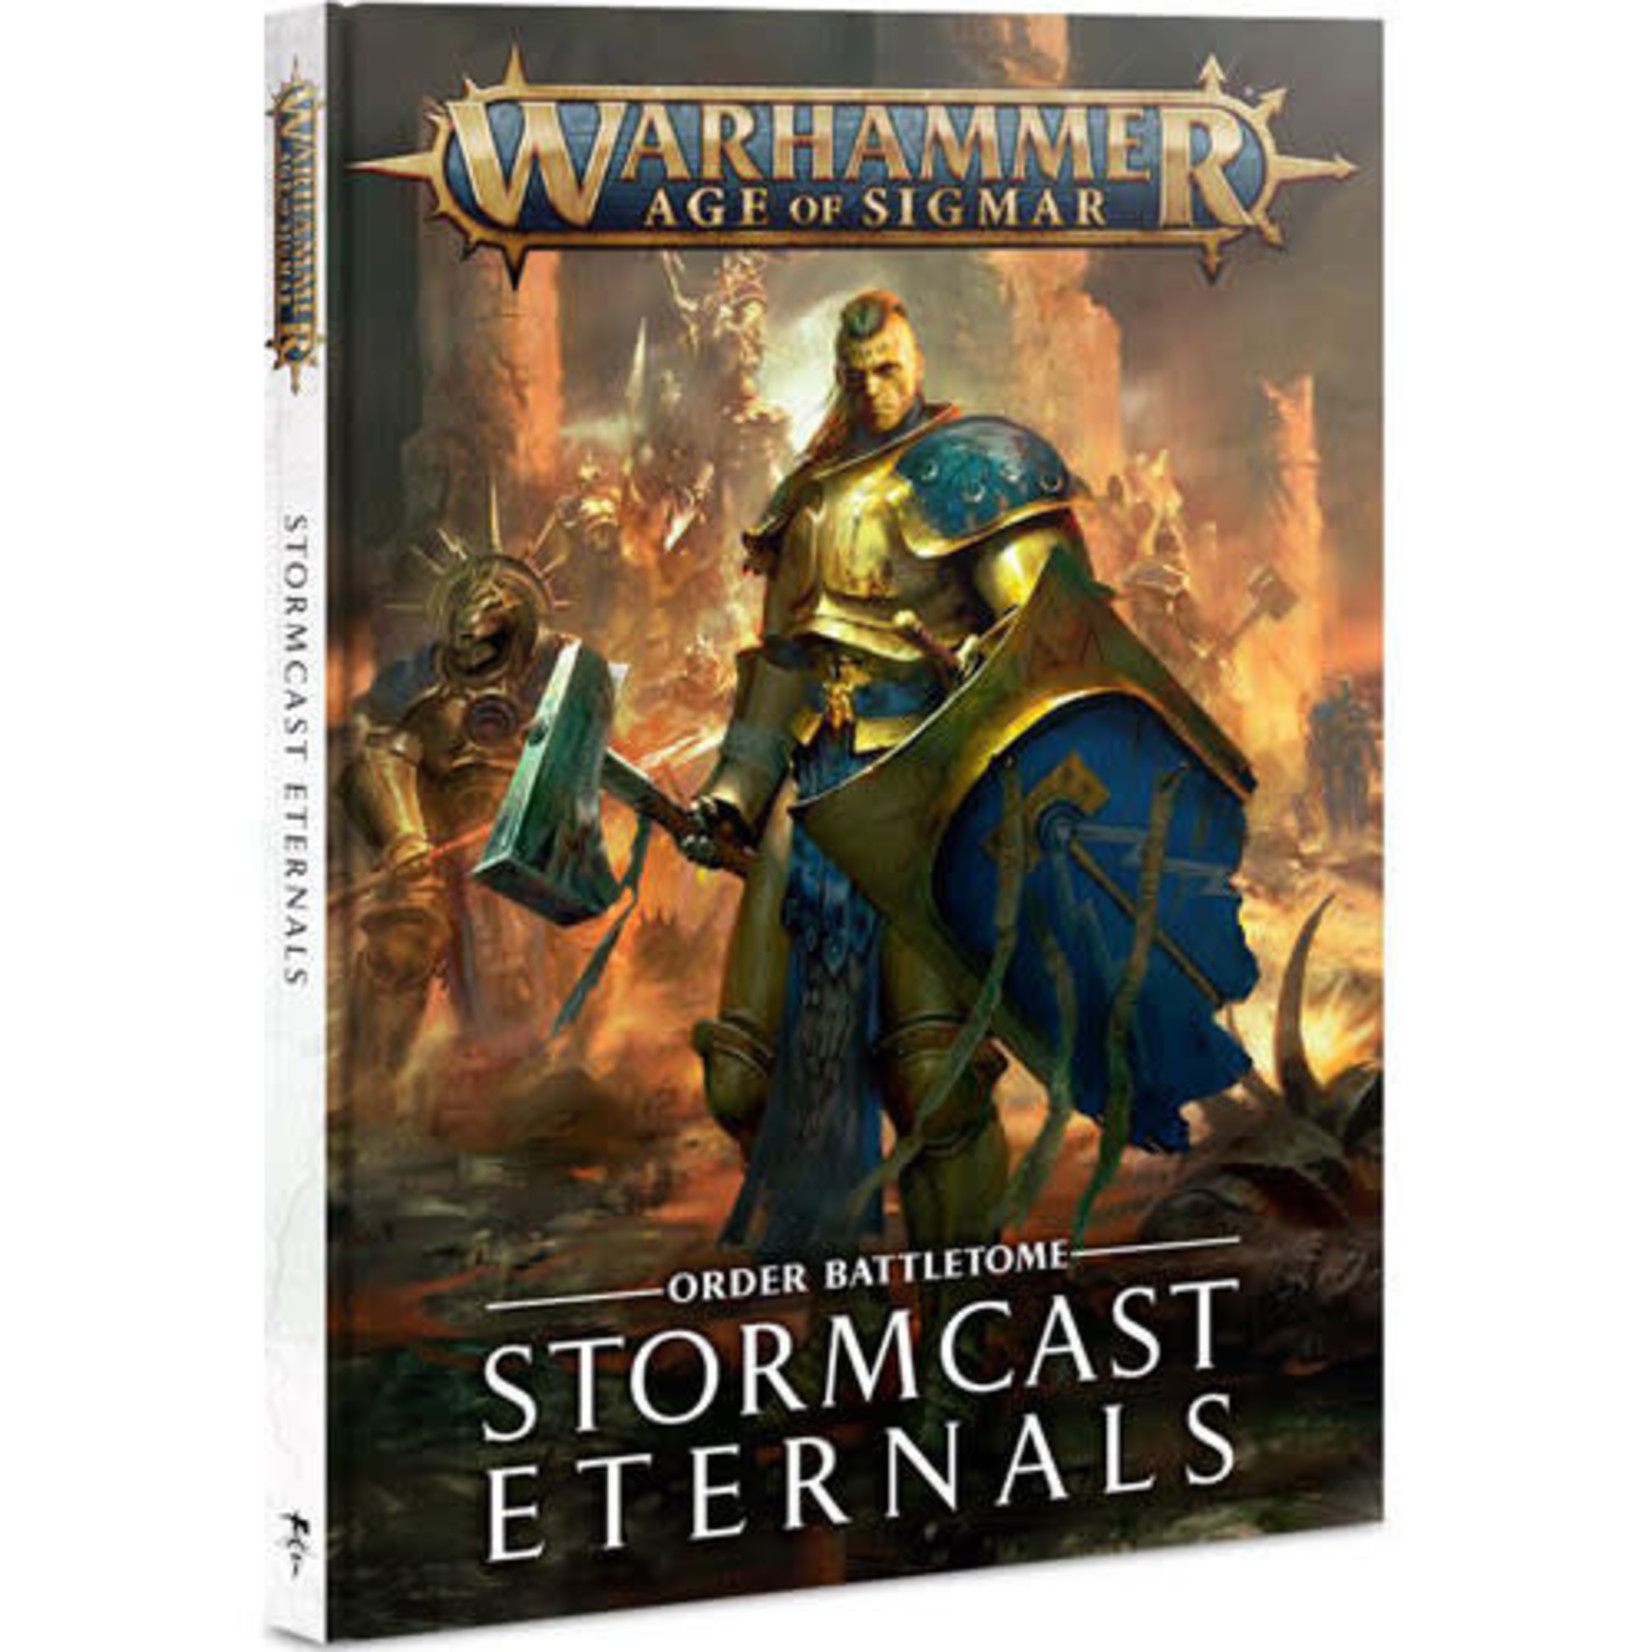 Games Workshop Warhammer Age of Sigmar: Battletome - Stormcast Eternals